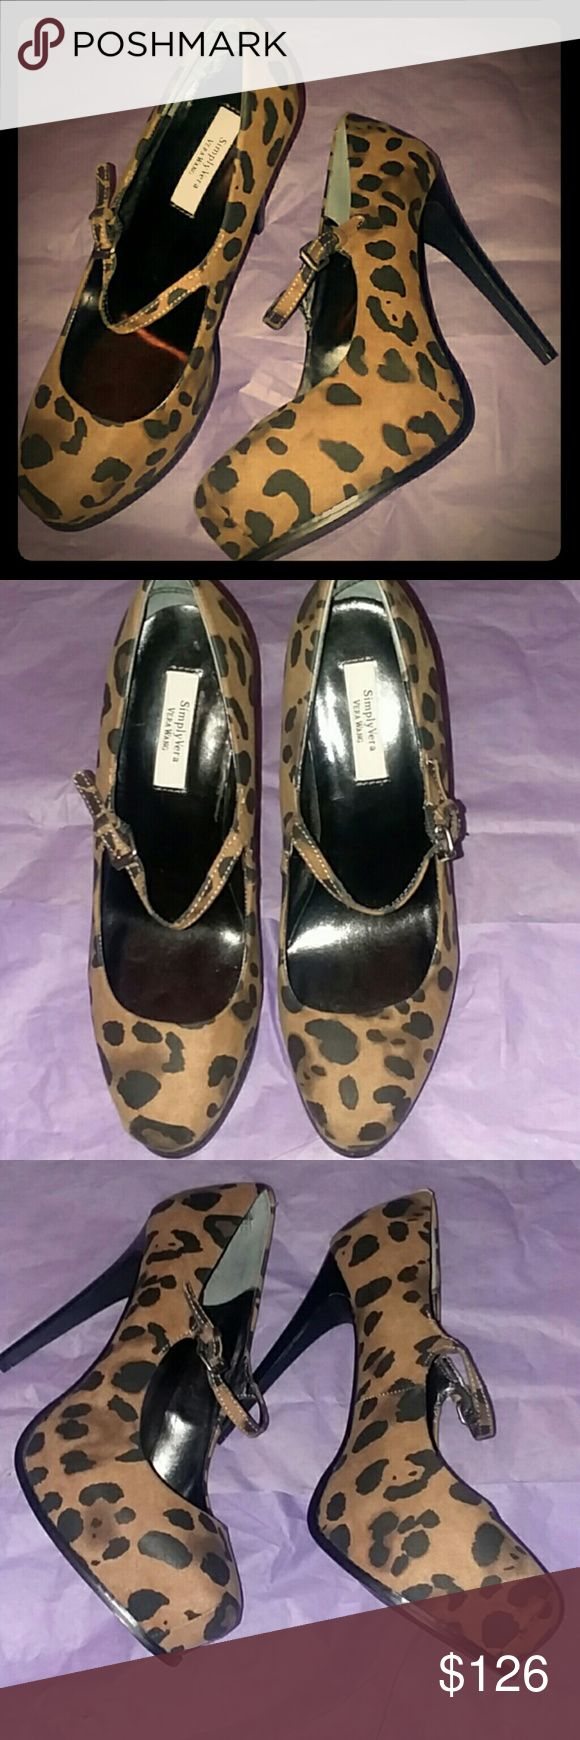 """Simply Vera VERA WANG Cheetah Heels Beautiful 5"""" heels with approx. 1"""" hidden platform. Excellent condition... only worn one time indoors. Bottoms show very minimal wear as shown in pic above.   🔷Thanks for checking out my closet!! 😙❤ 🔷All prices are negotiable, so don't be shy... make me an offer I can't resist!! 💃 🔷Any ✔'s, feel free to ask! 🤔 🚫Tradea Simply Vera Vera Wang Shoes Heels"""